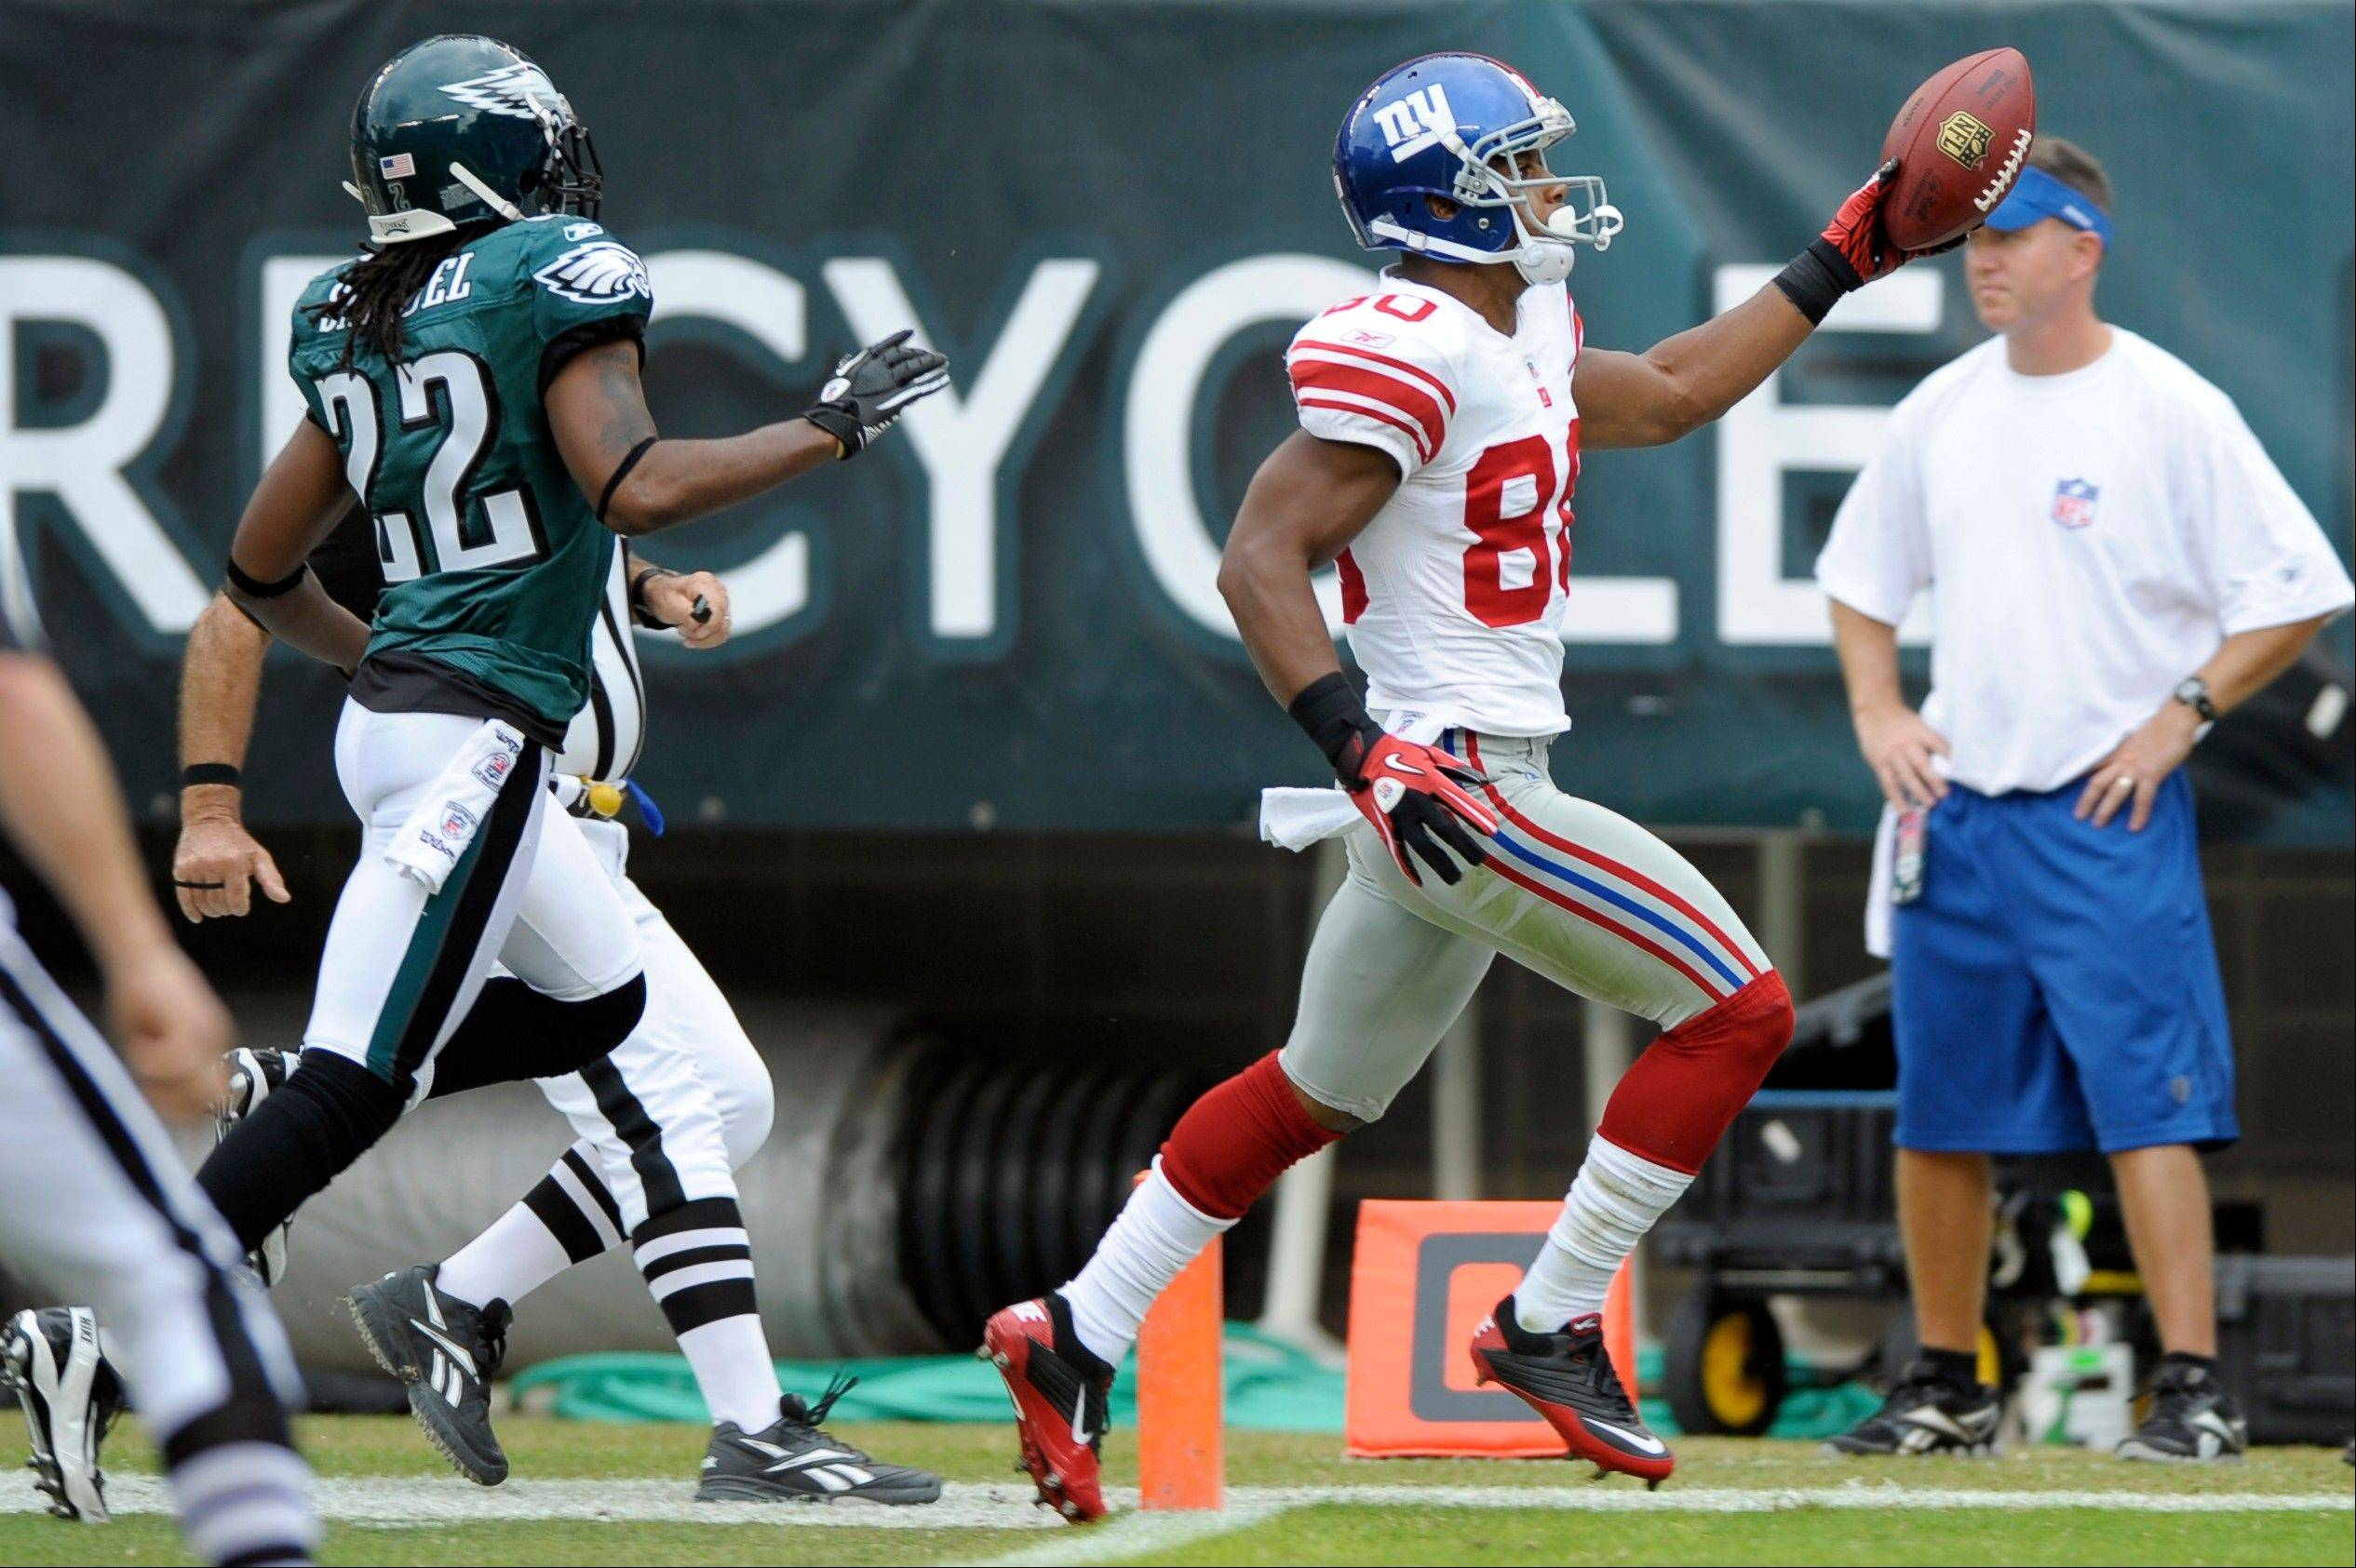 New York Giants wide receiver Victor Cruzscores a touchdown with Philadelphia Eagles cornerback Asante Samuel in pursuit Sunday in Philadelphia. Over two games, Matt Ryan and Eli Manning have burned the Eagles defense for 4 touchdowns apiece.